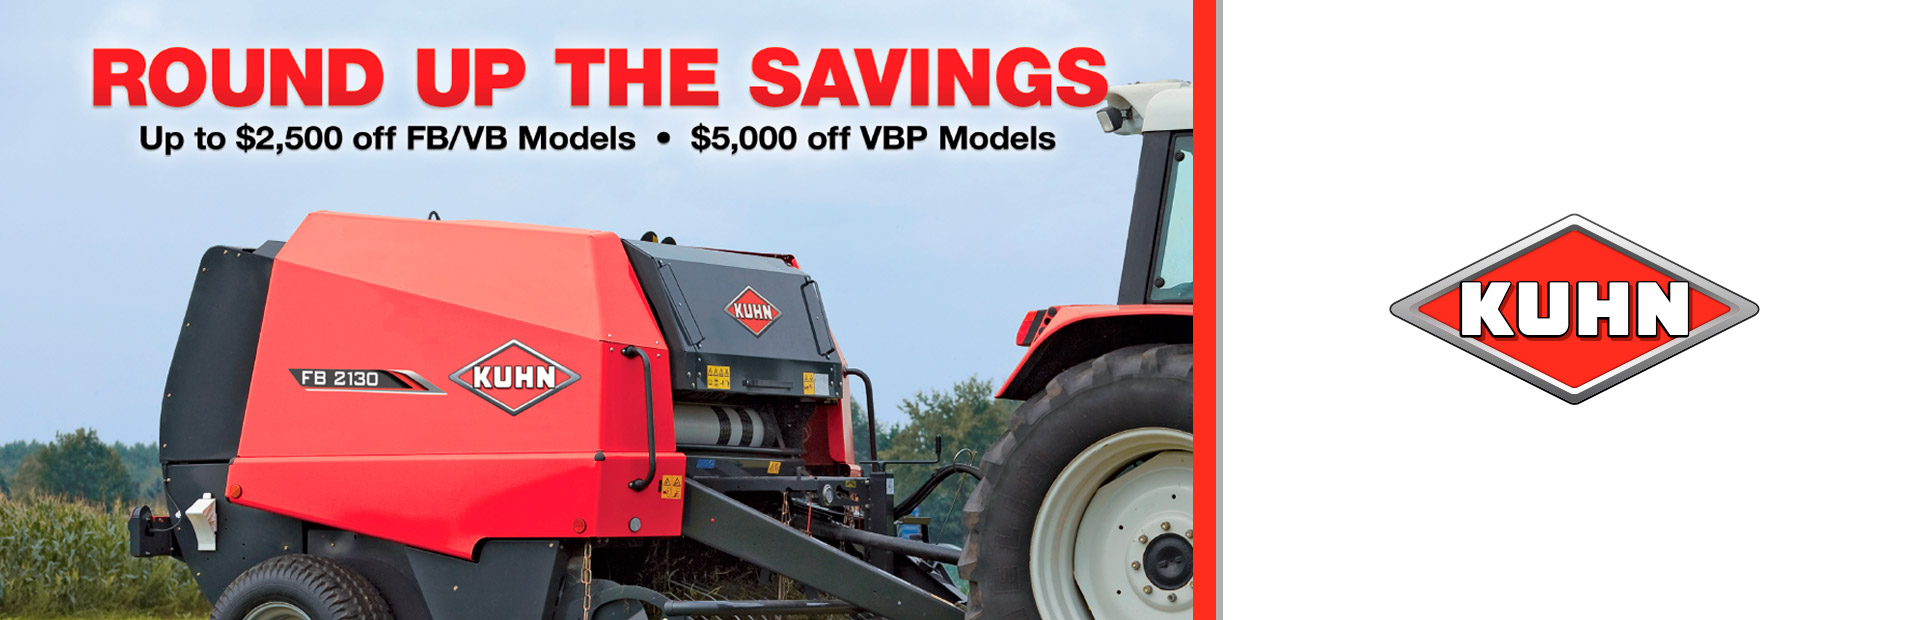 Kuhn: Round Up the Savings